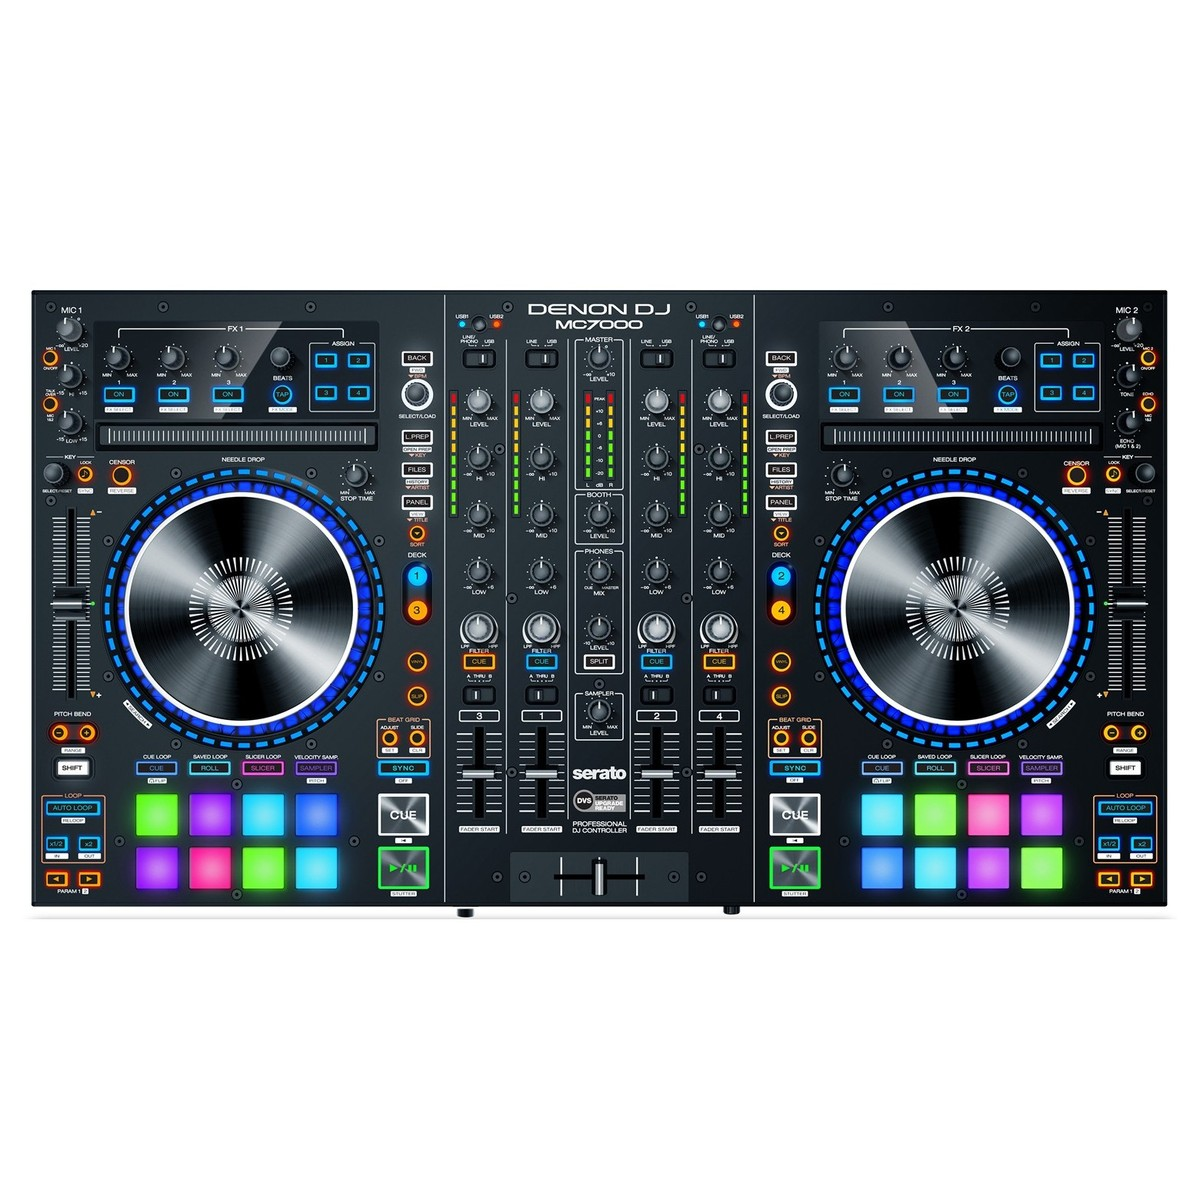 contr leur dj denon mc7000 4 canaux avec 2 interfaces audio logiciel de mix serato dj. Black Bedroom Furniture Sets. Home Design Ideas